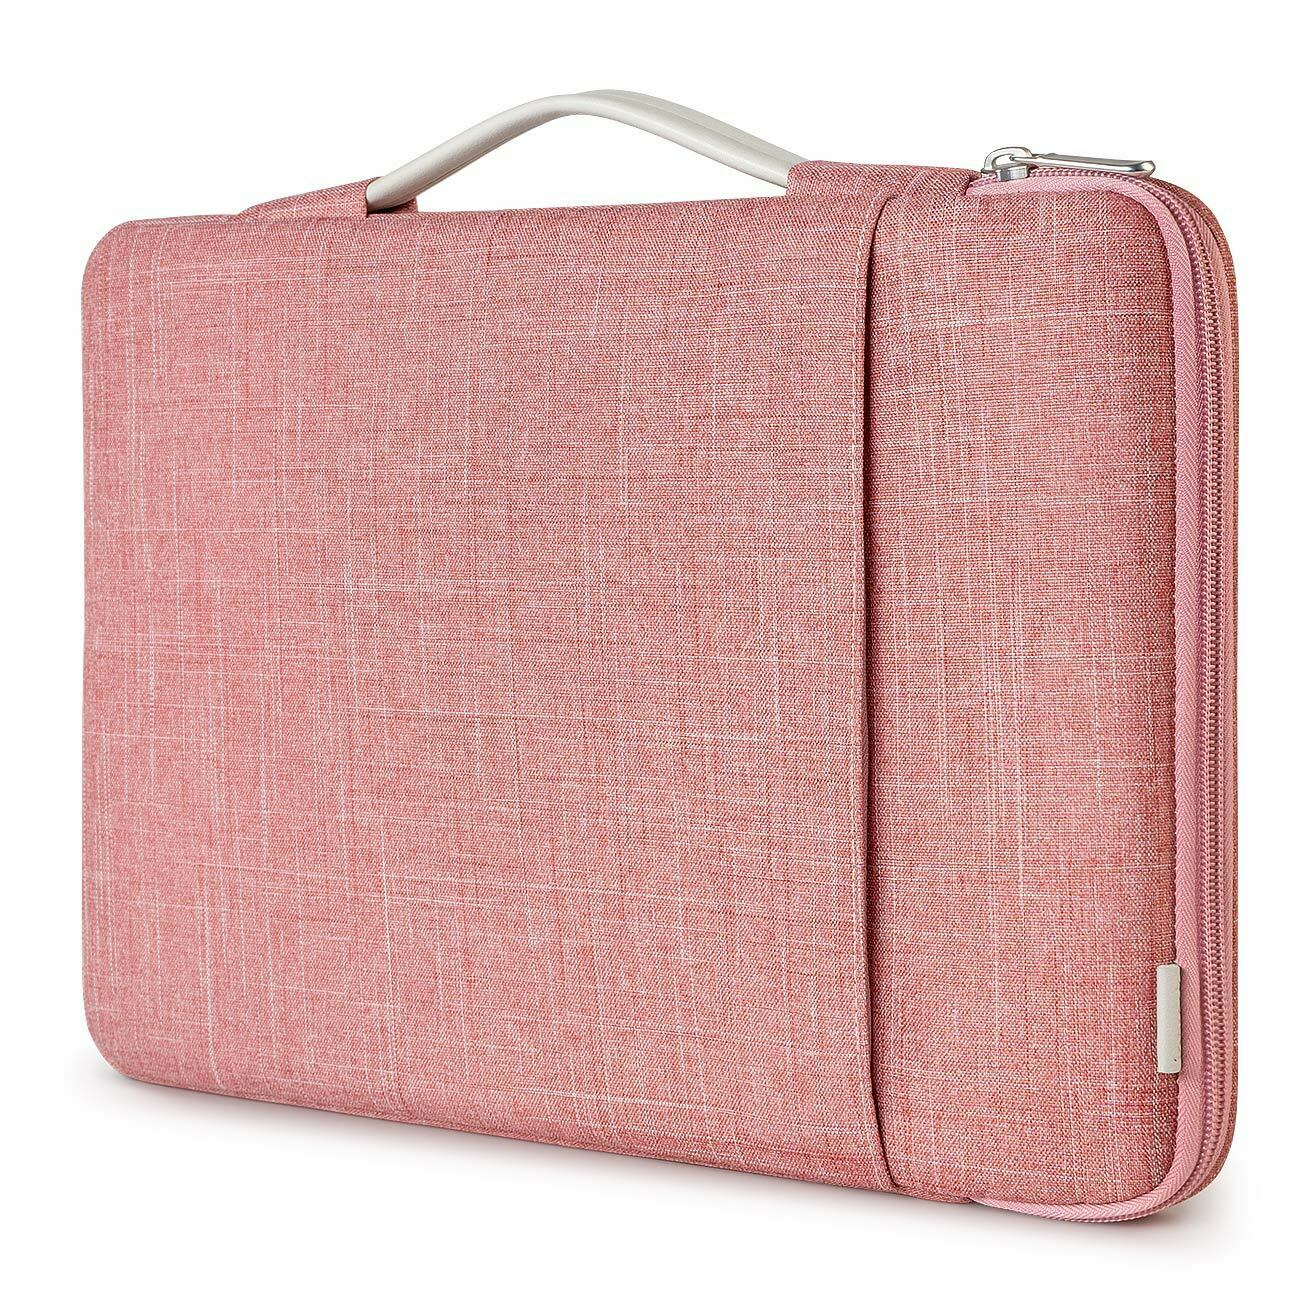 Inateck 13-13.3'' Laptop Sleeve Case Bag Briefcase for MacBook Pro/Air 2012-2020. Buy it now for 22.99